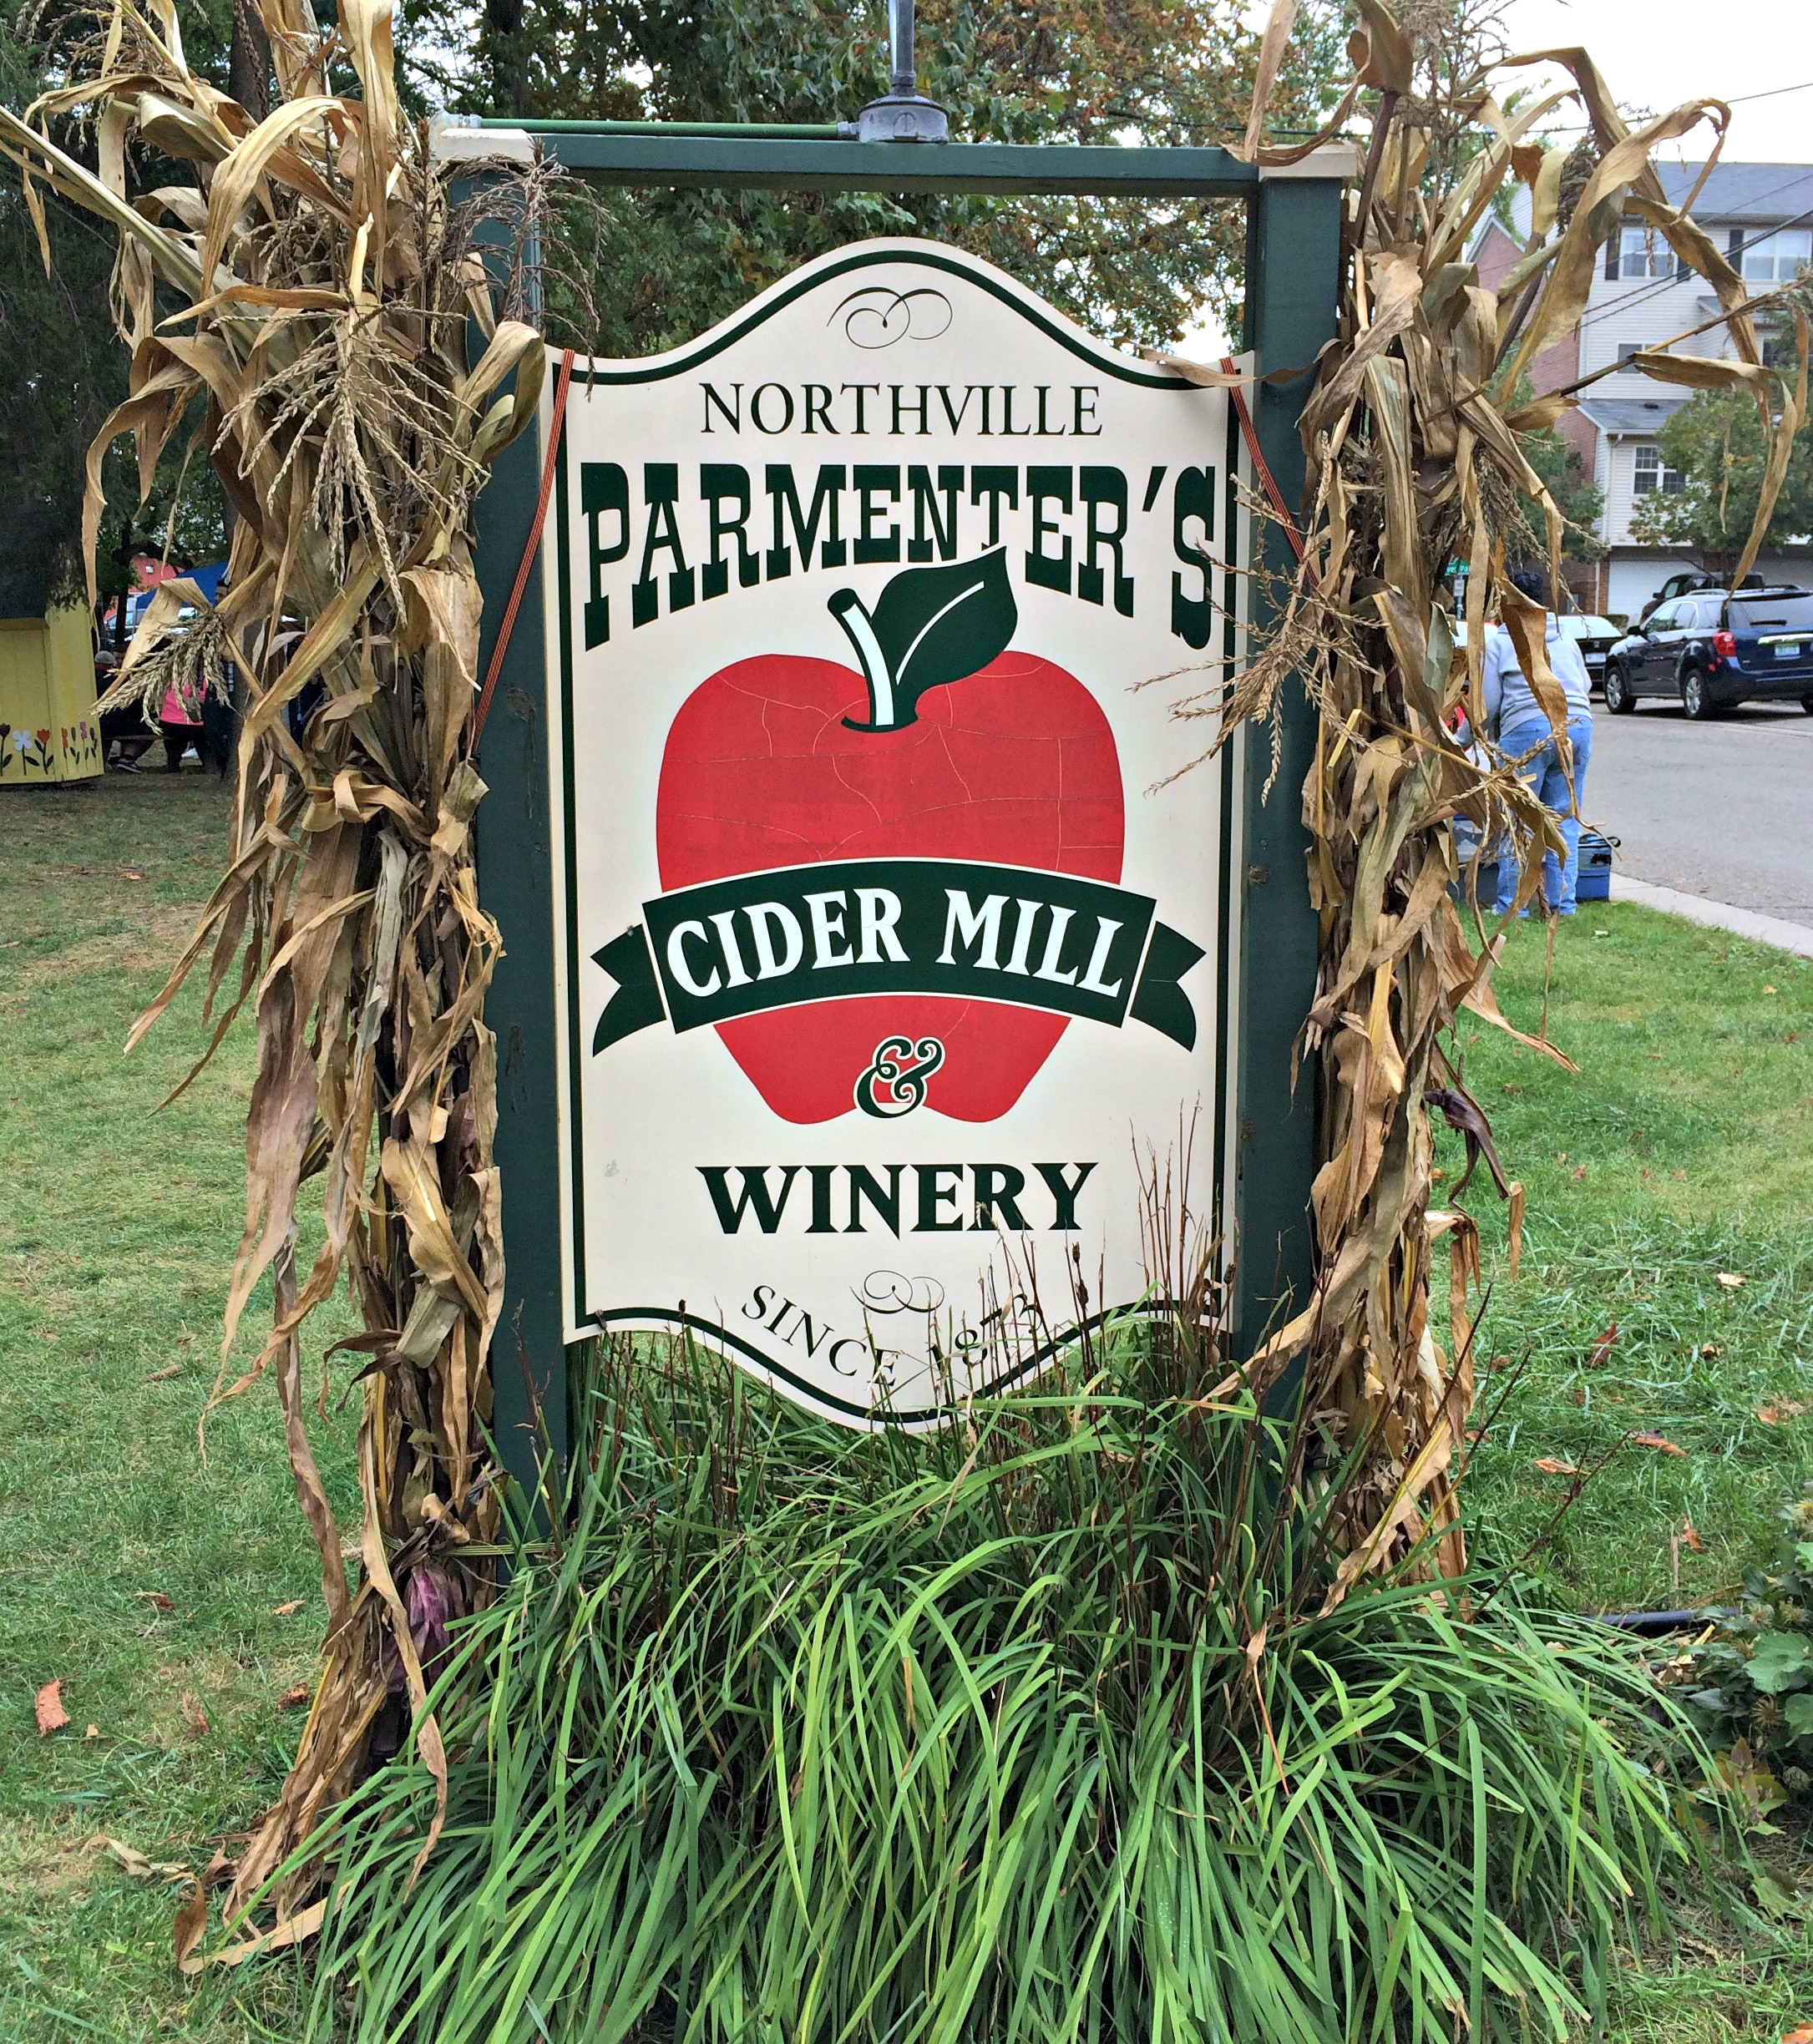 Parmenter's Northville Cider Mll & Winery